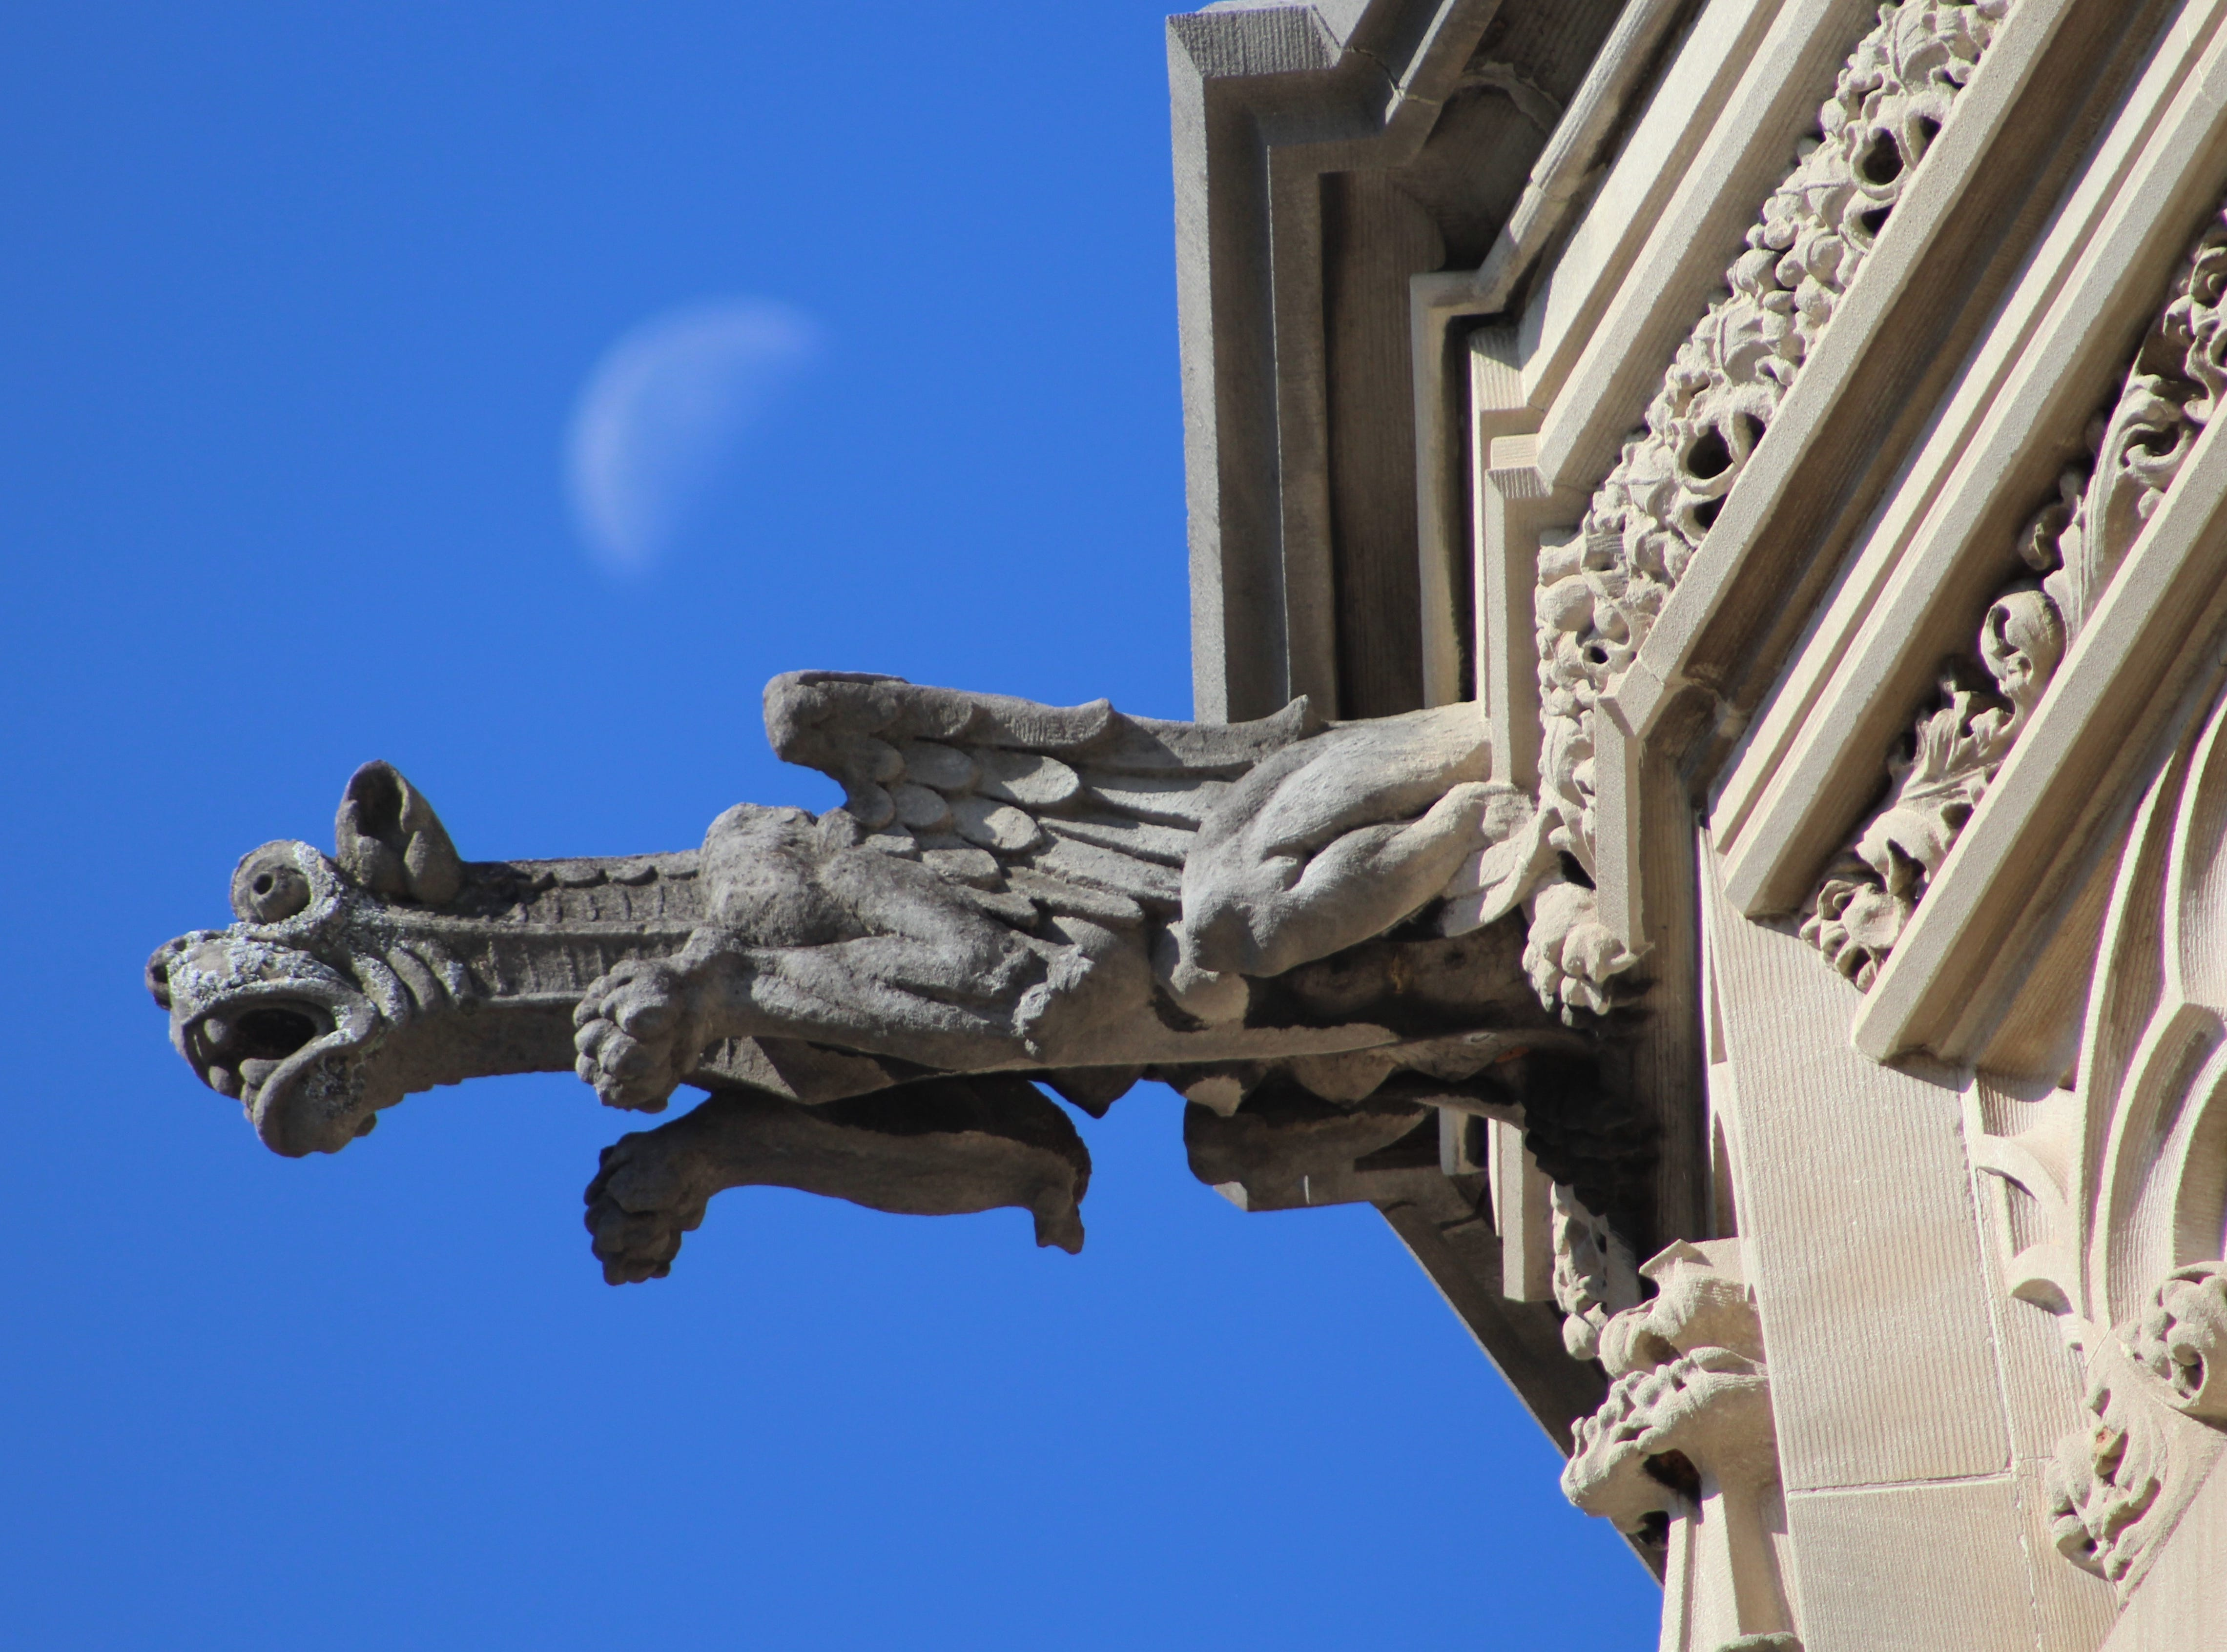 A gargoyle protrudes from Biltmore House, set against a blue fall sky with a bit of moon still visible. The photo was taken, appropriately enough, on Halloween.